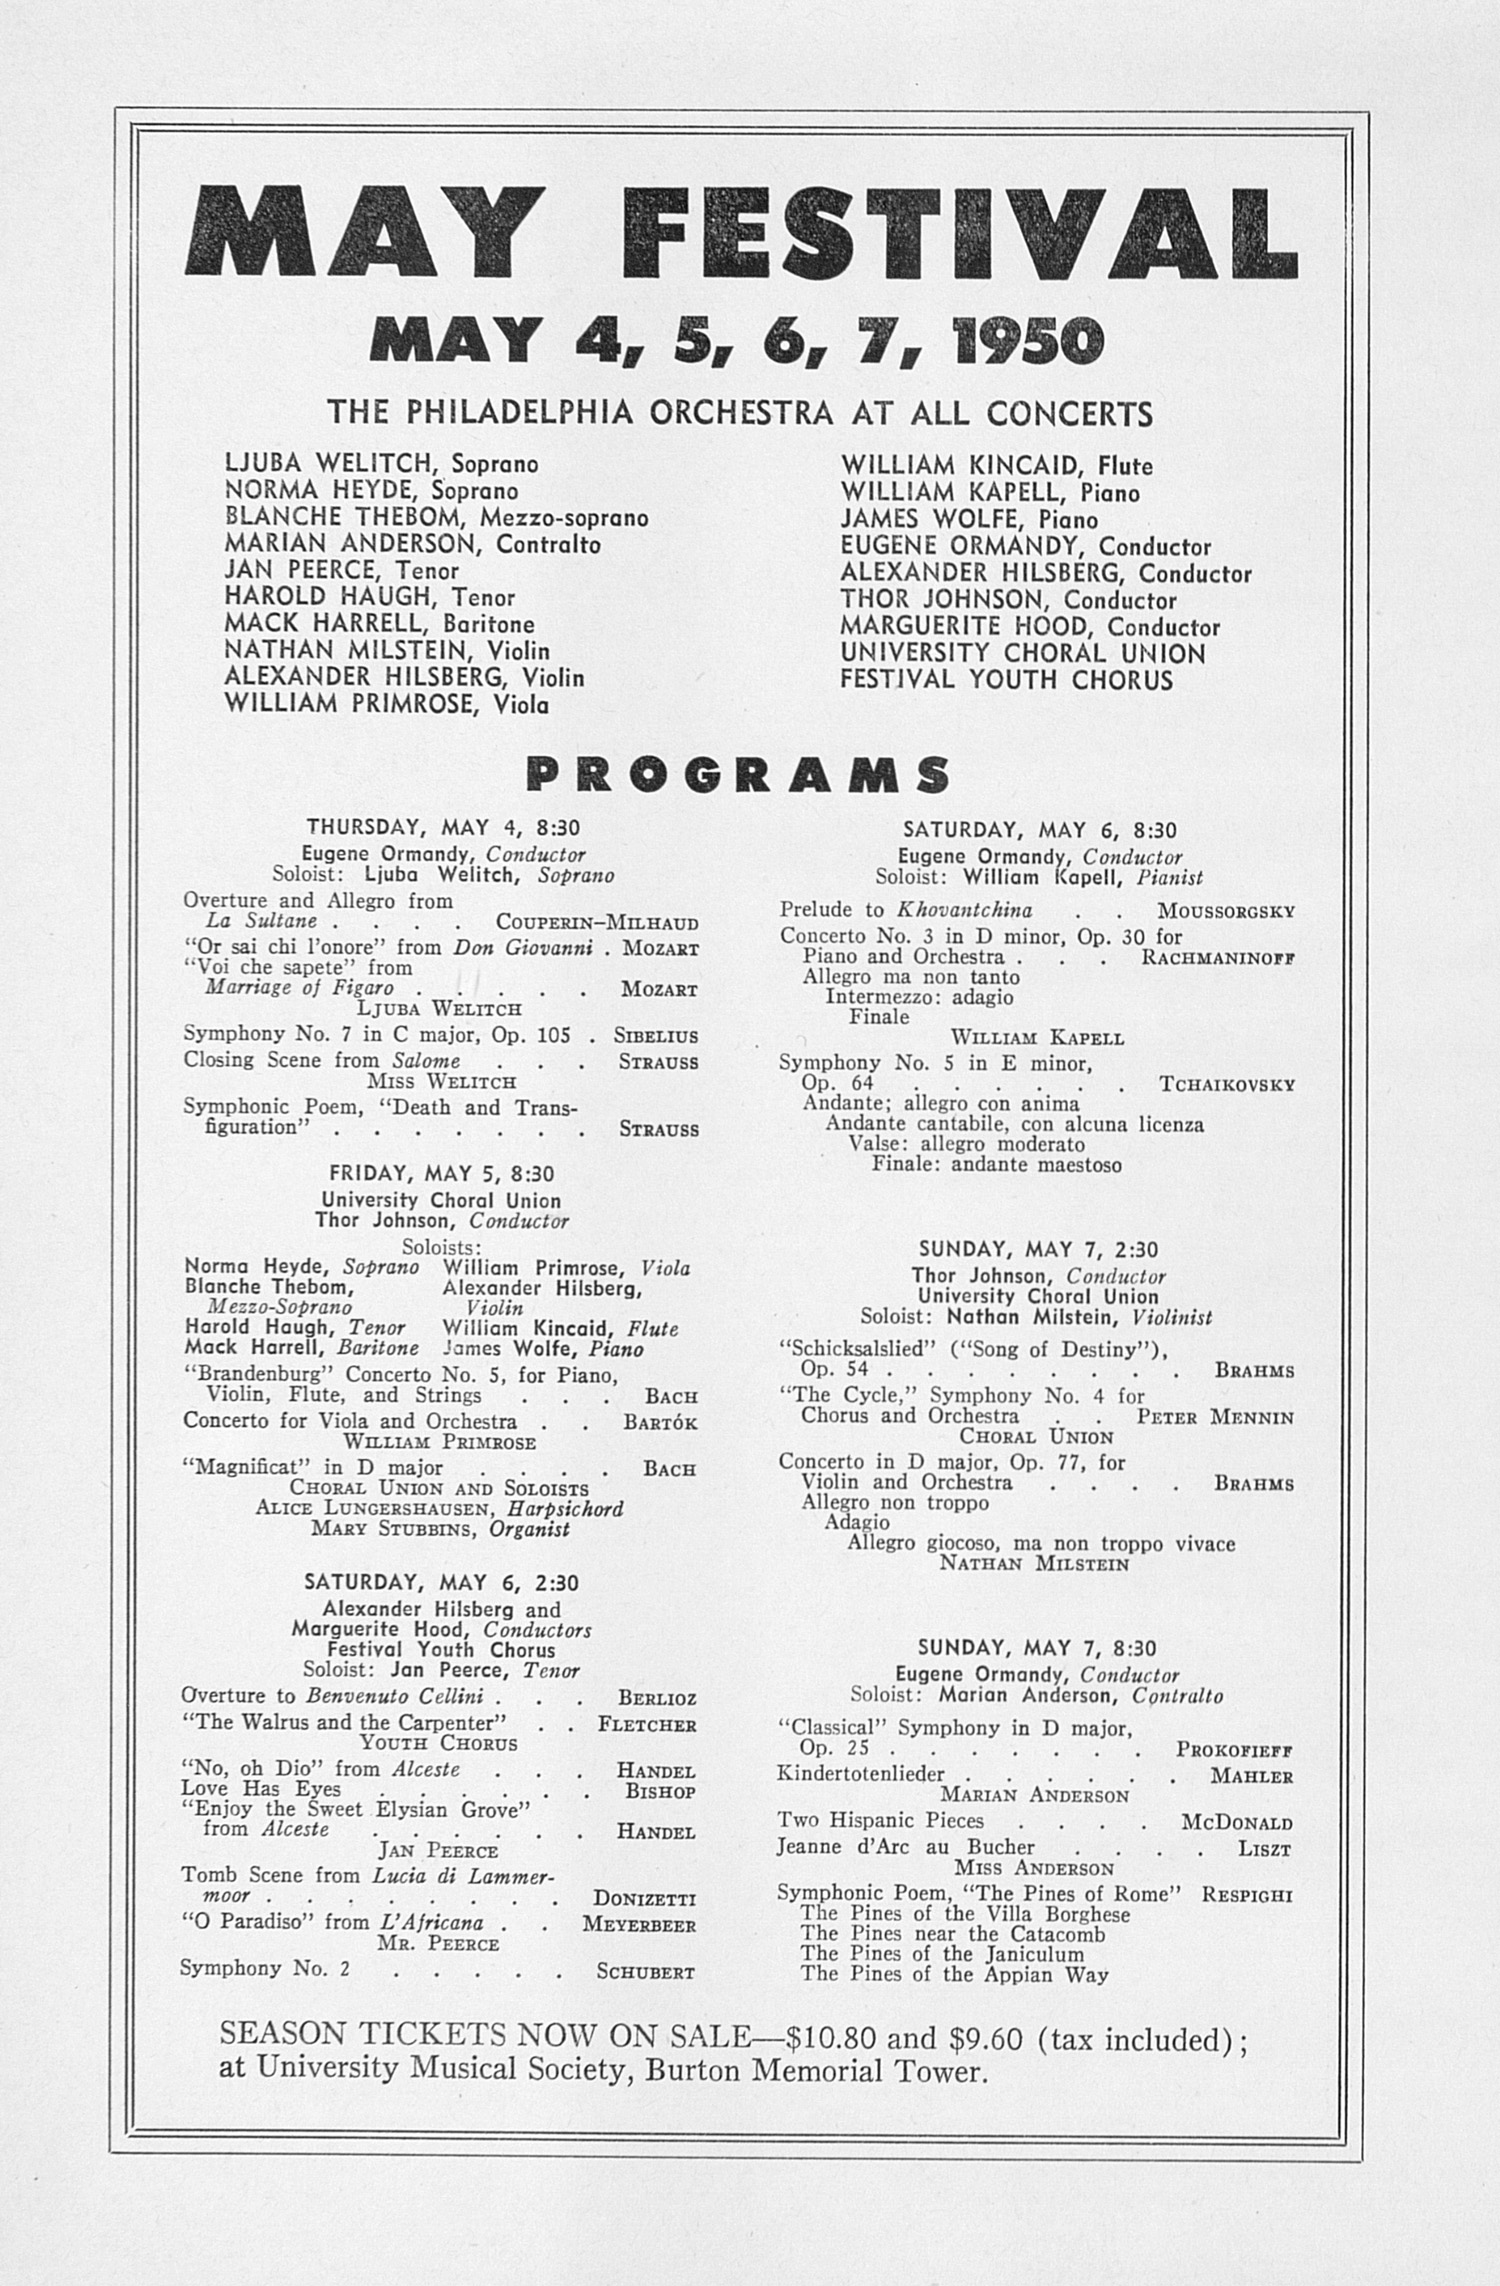 UMS Concert Program, March 20, 1950: Seventy-first Annual Choral Union Concert Series -- Zino Francescatti image